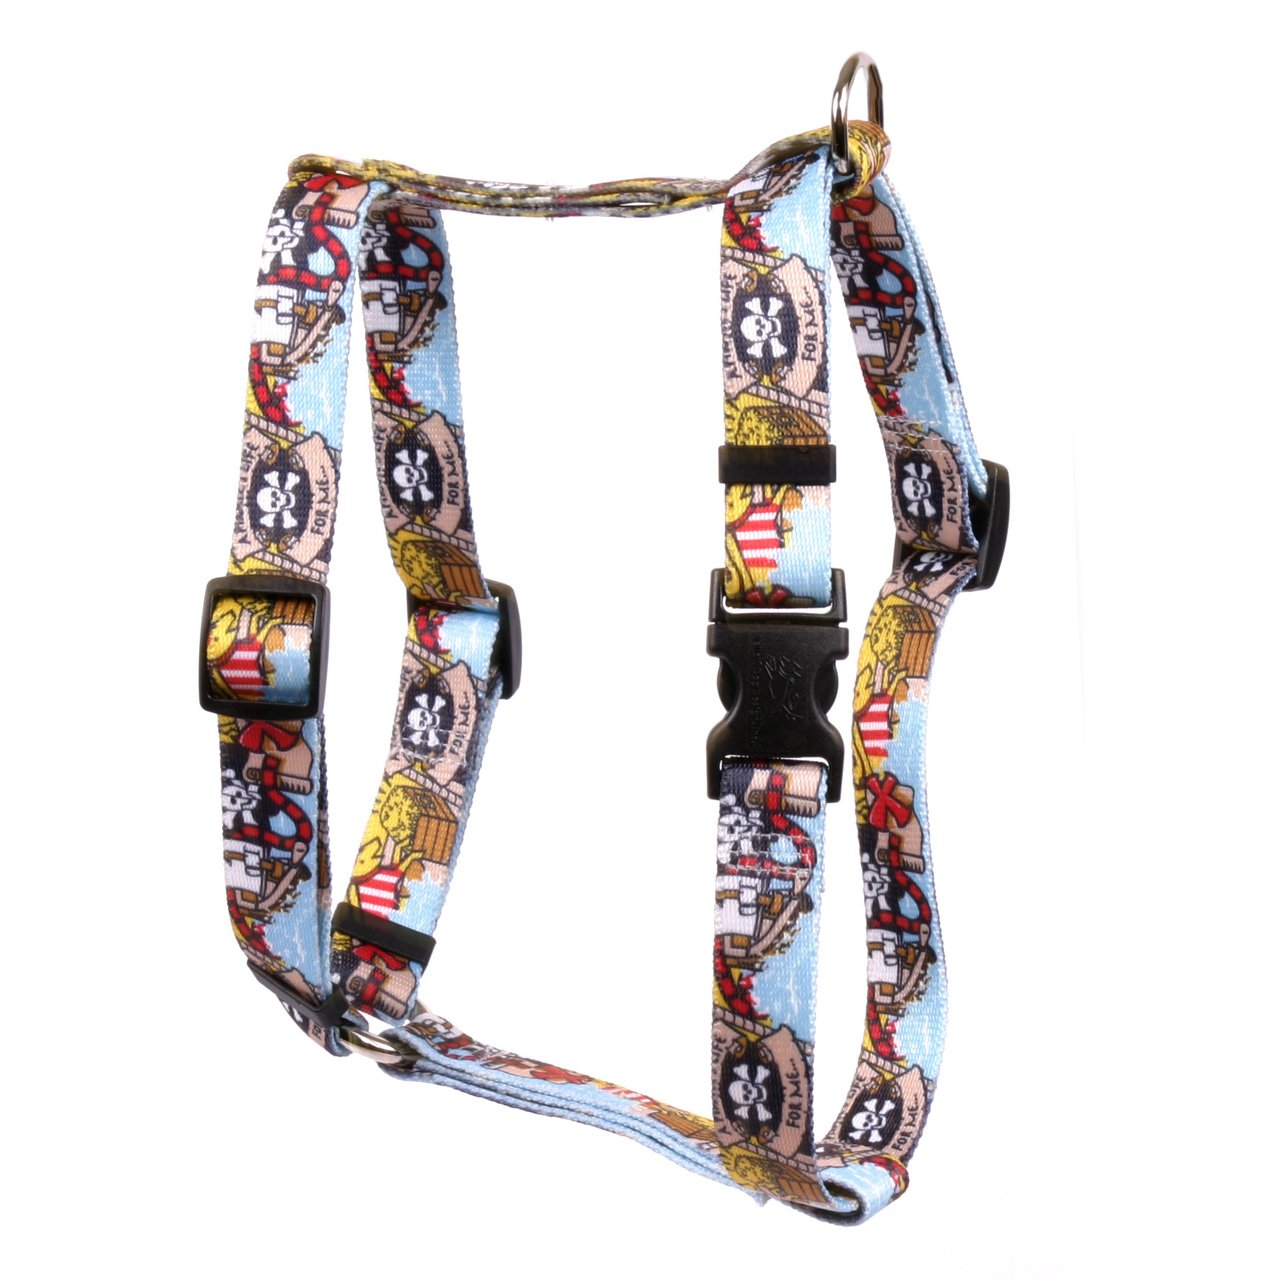 Yellow Dog Design Pirate Booty Roman Style H Dog Harness, Small/Medium-3/4 Wide fits Chest of 14 to 20''